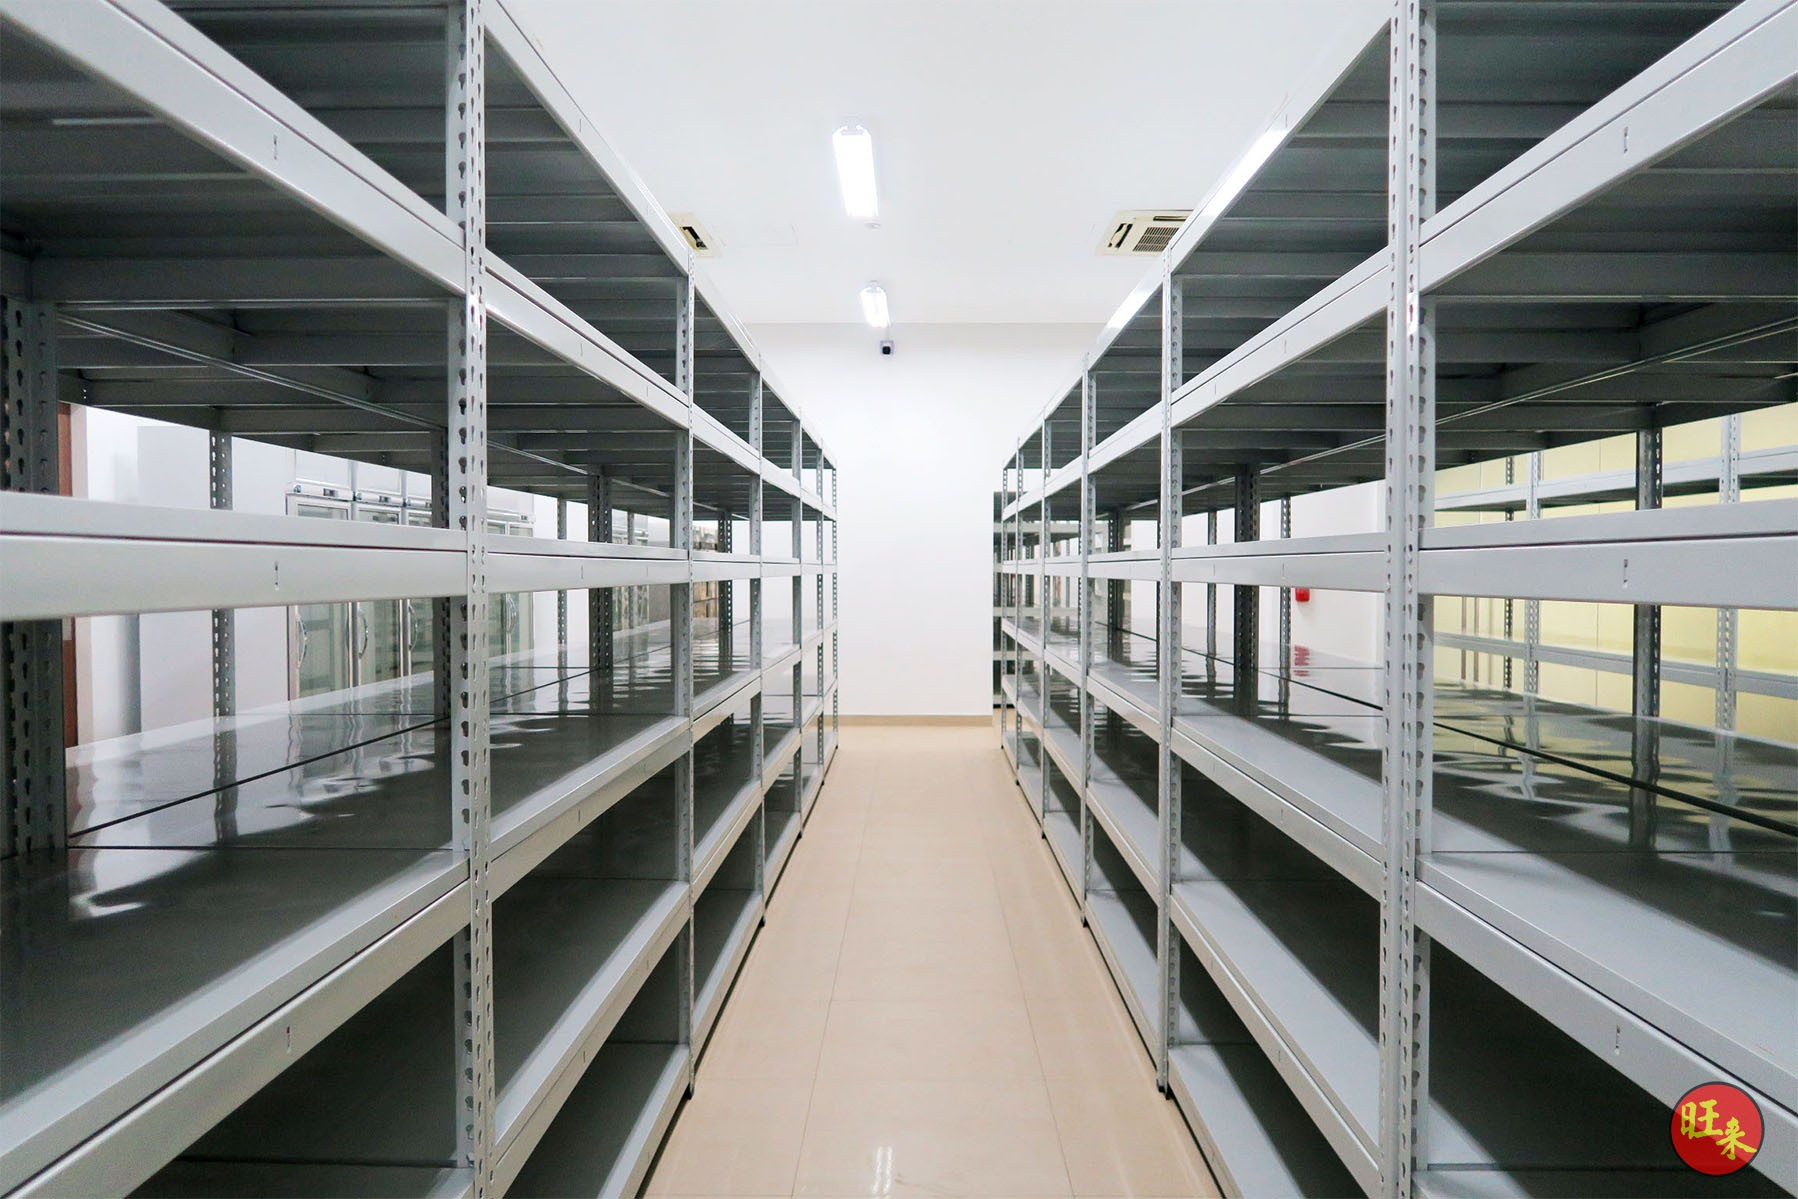 Recommended to use Boltless Value Racks for: ❖ Bomb Shelter ❖ Store Rooms ❖ Office ❖ Retail ❖